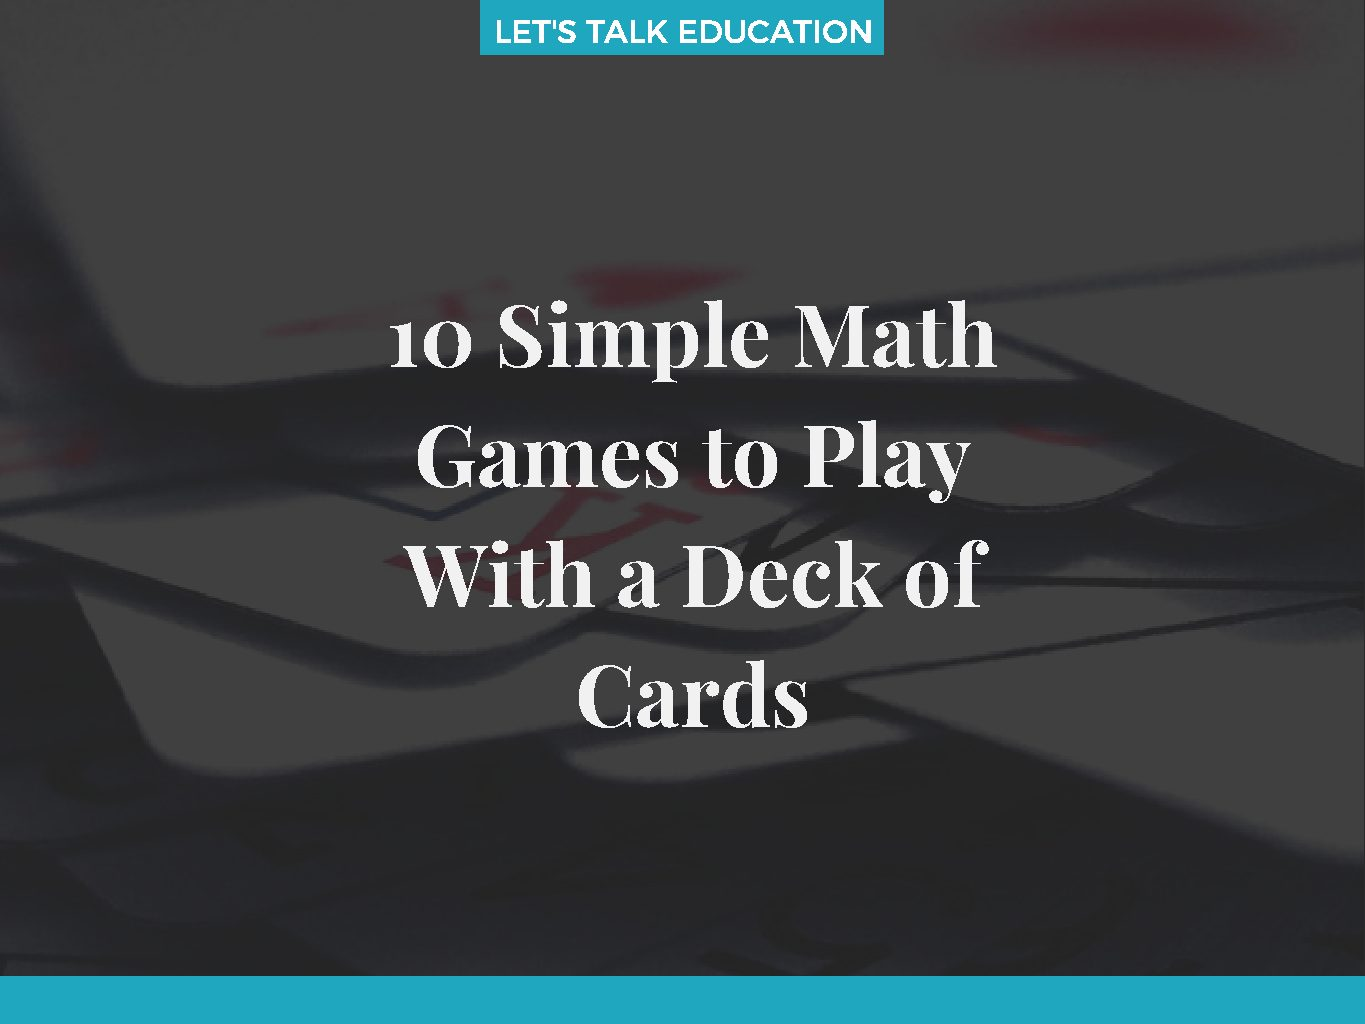 10 Simple Math Games to Play With a Deck of Cards